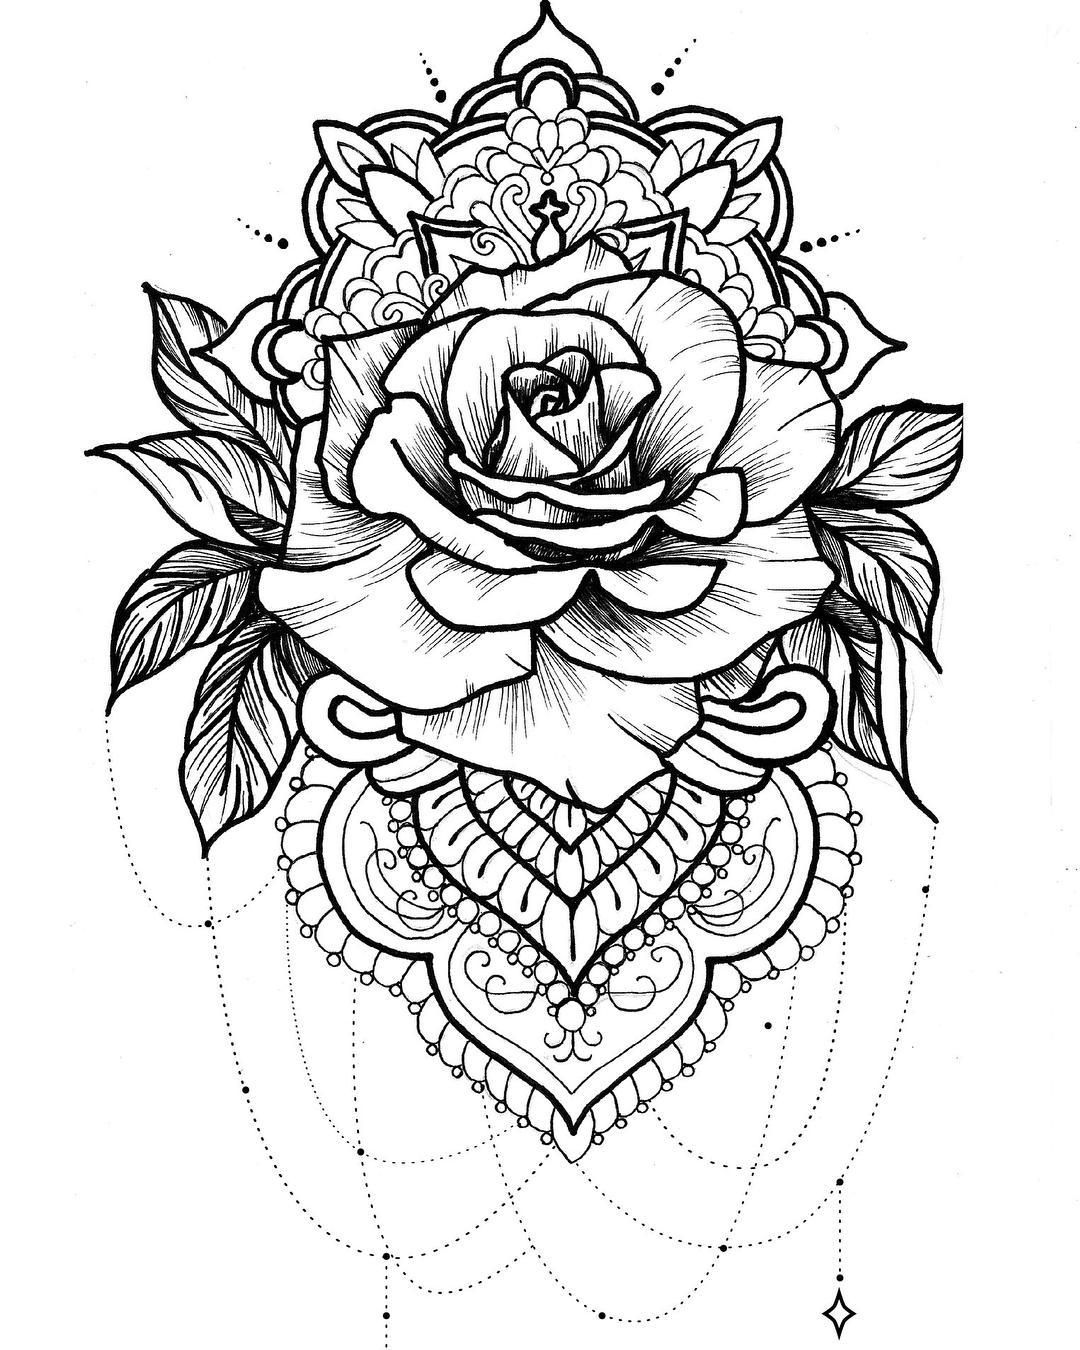 Pin by ortashia on tatted ideas pinterest rose tattoo and tatting